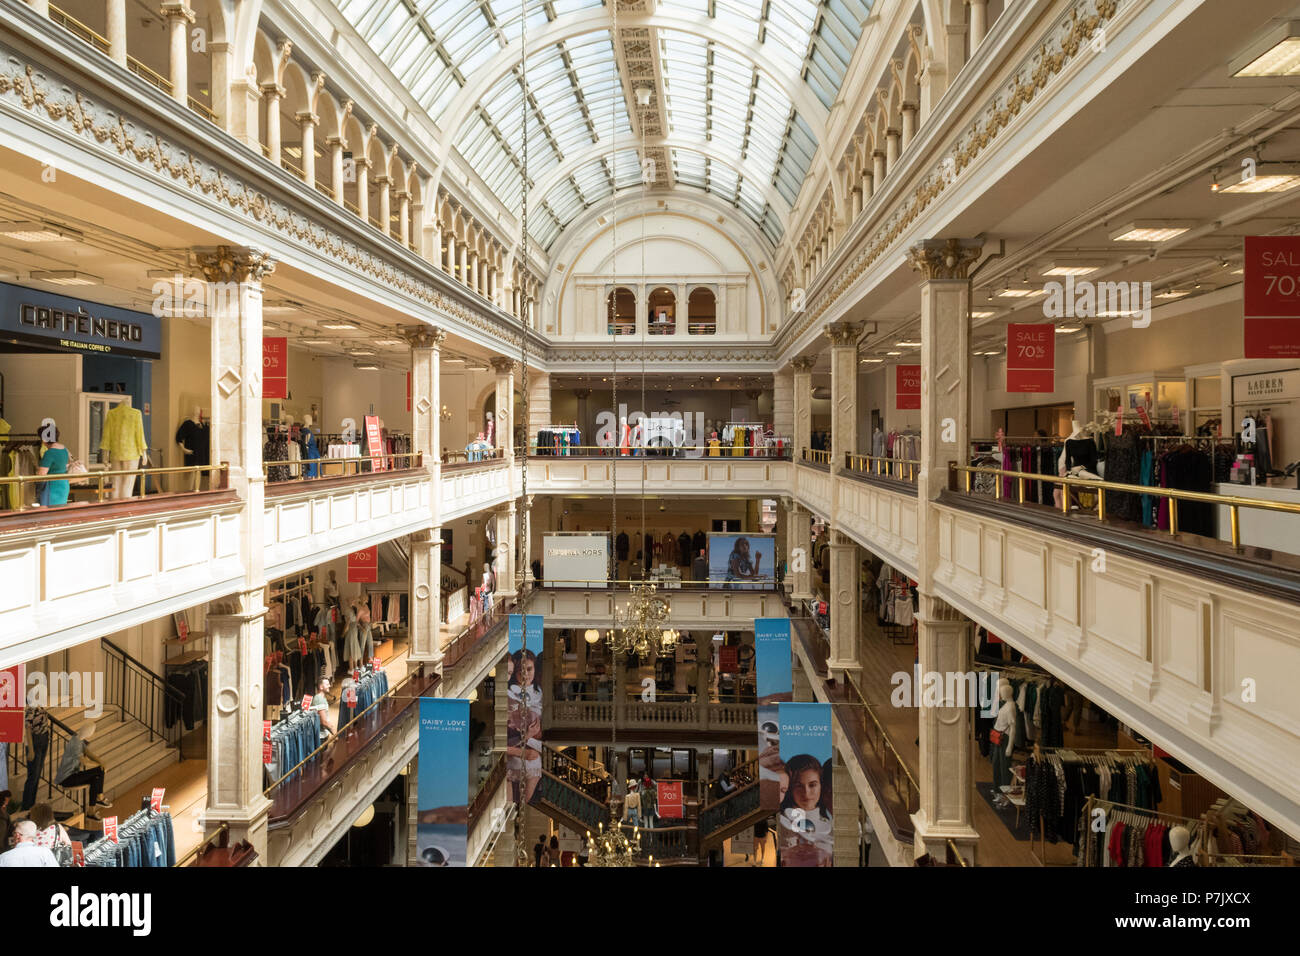 Le magasin Frasers, Glasgow, Scotland, UK l'intérieur Photo Stock